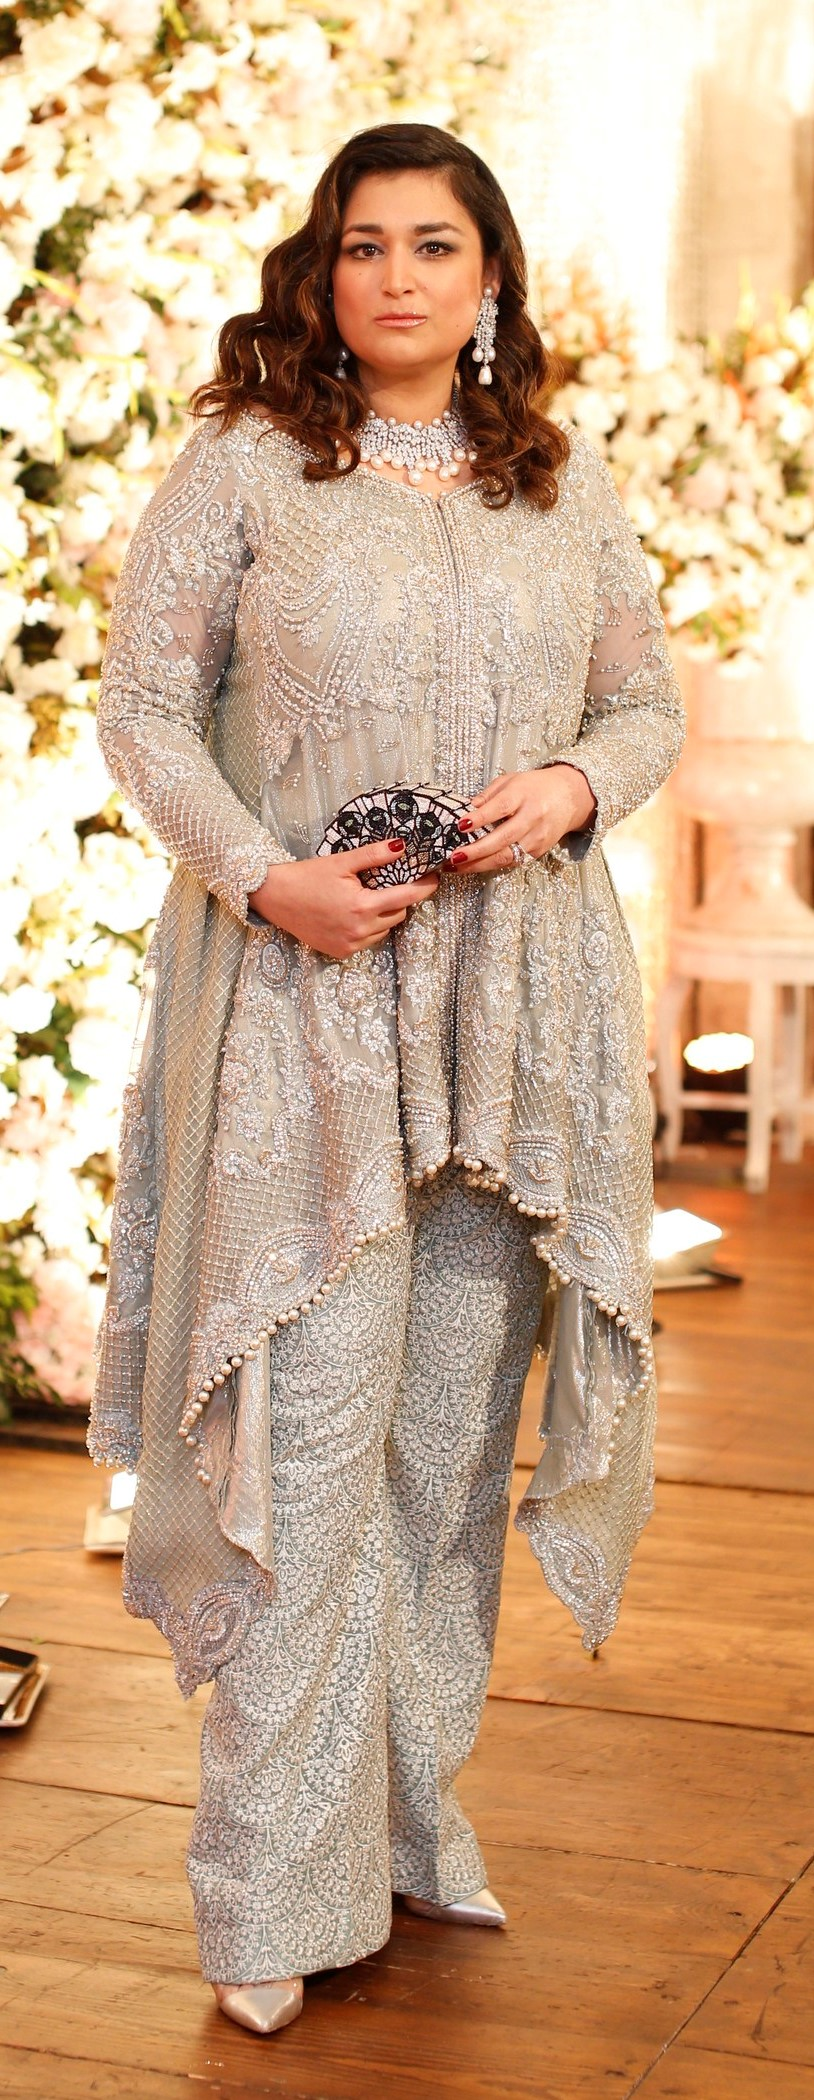 Shazia Deen - Shines bright in a Faraz Manan outfit and Neemar bling